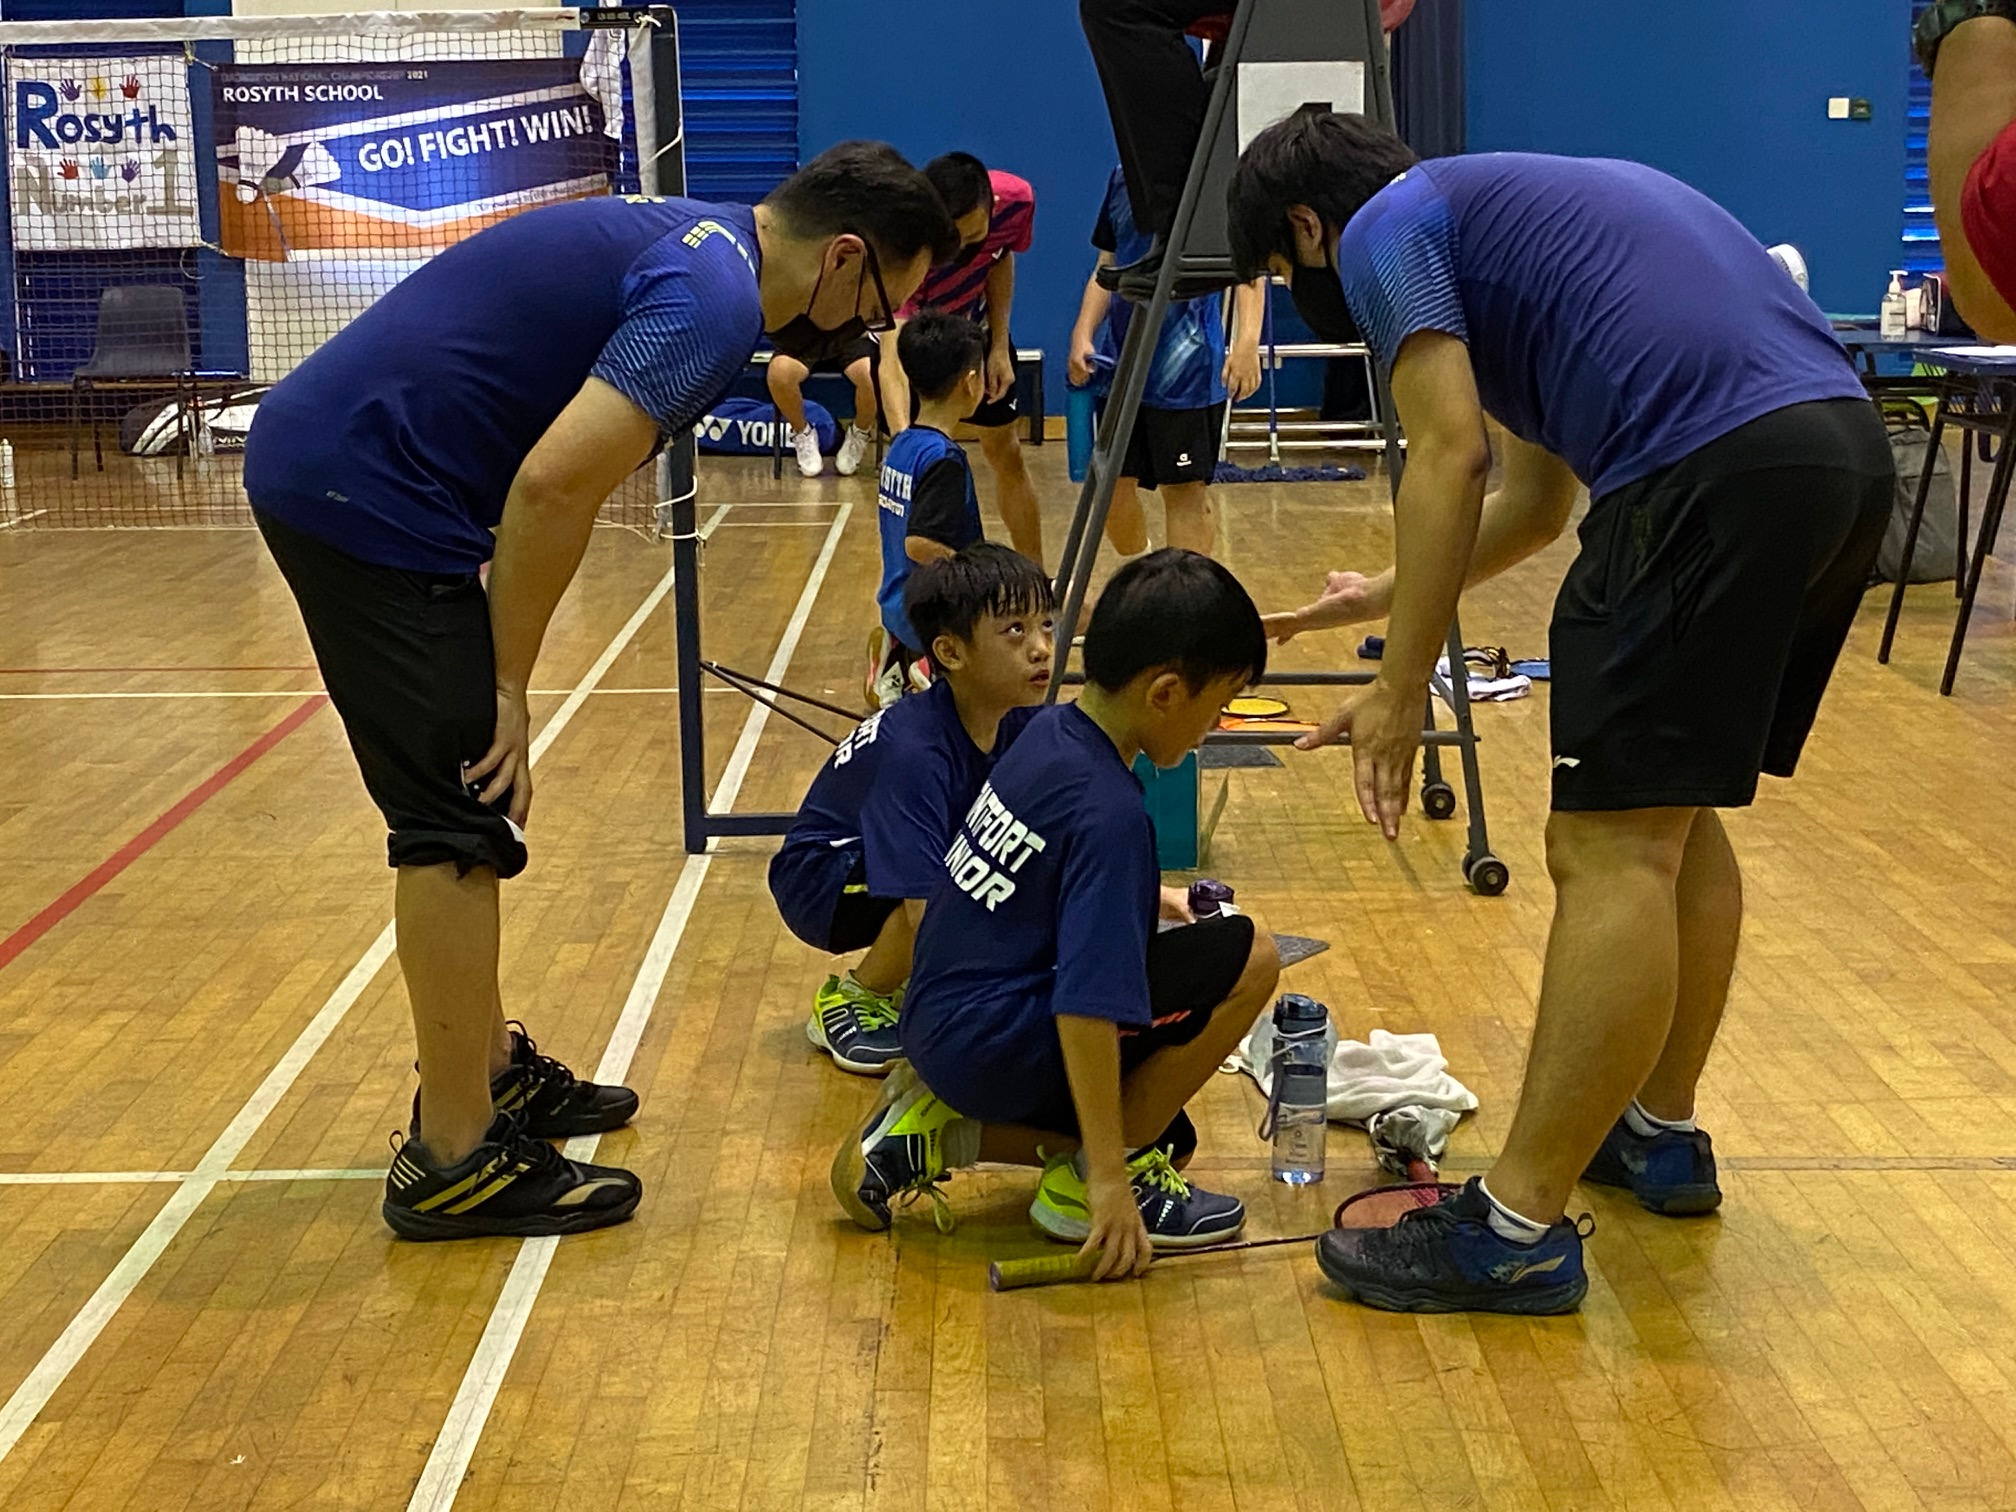 NSG Snr Div North Zone boys' badminton final - Montfort twins and coaches in second doubles